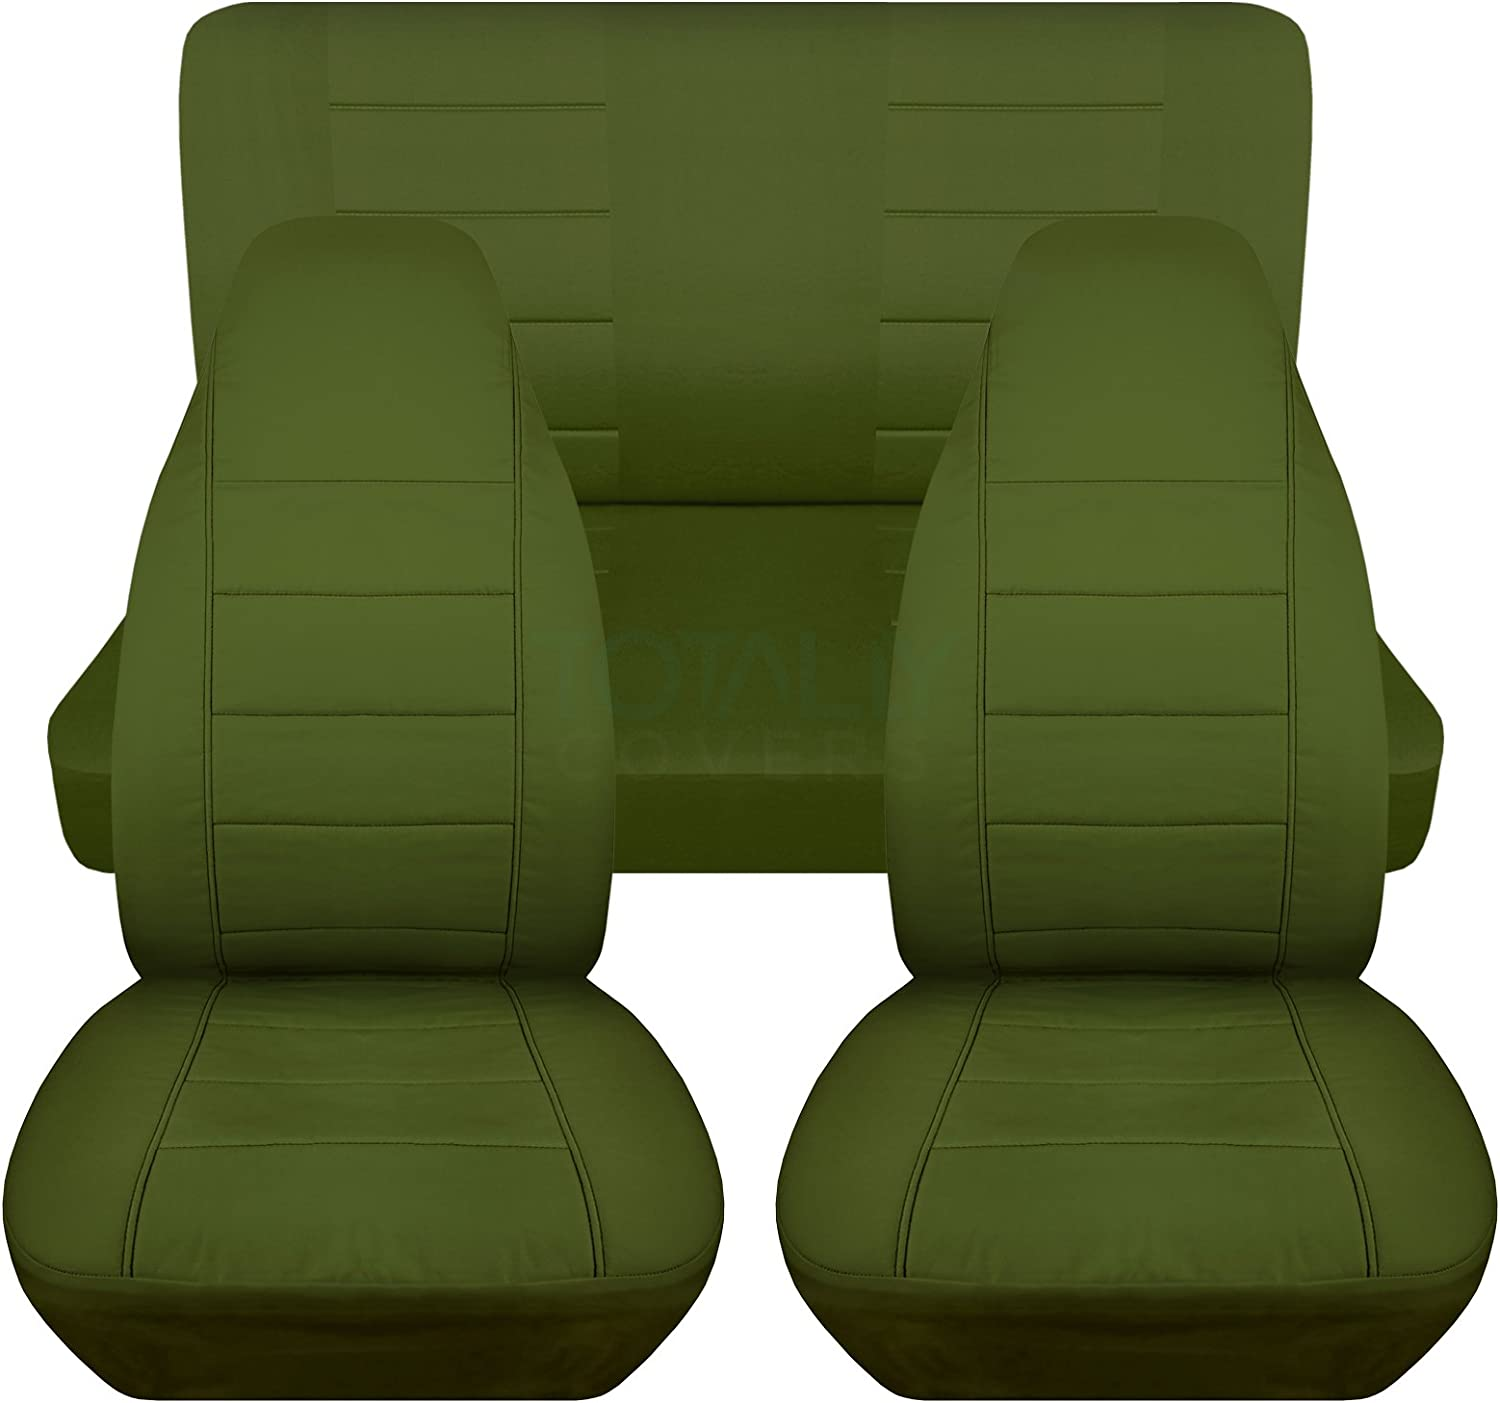 Will Make Fit Any Car//Truck//Van//RV//SUV Full Set 23 Colors Semi-Custom Fit Totally Covers Solid Car Seat Covers: Black